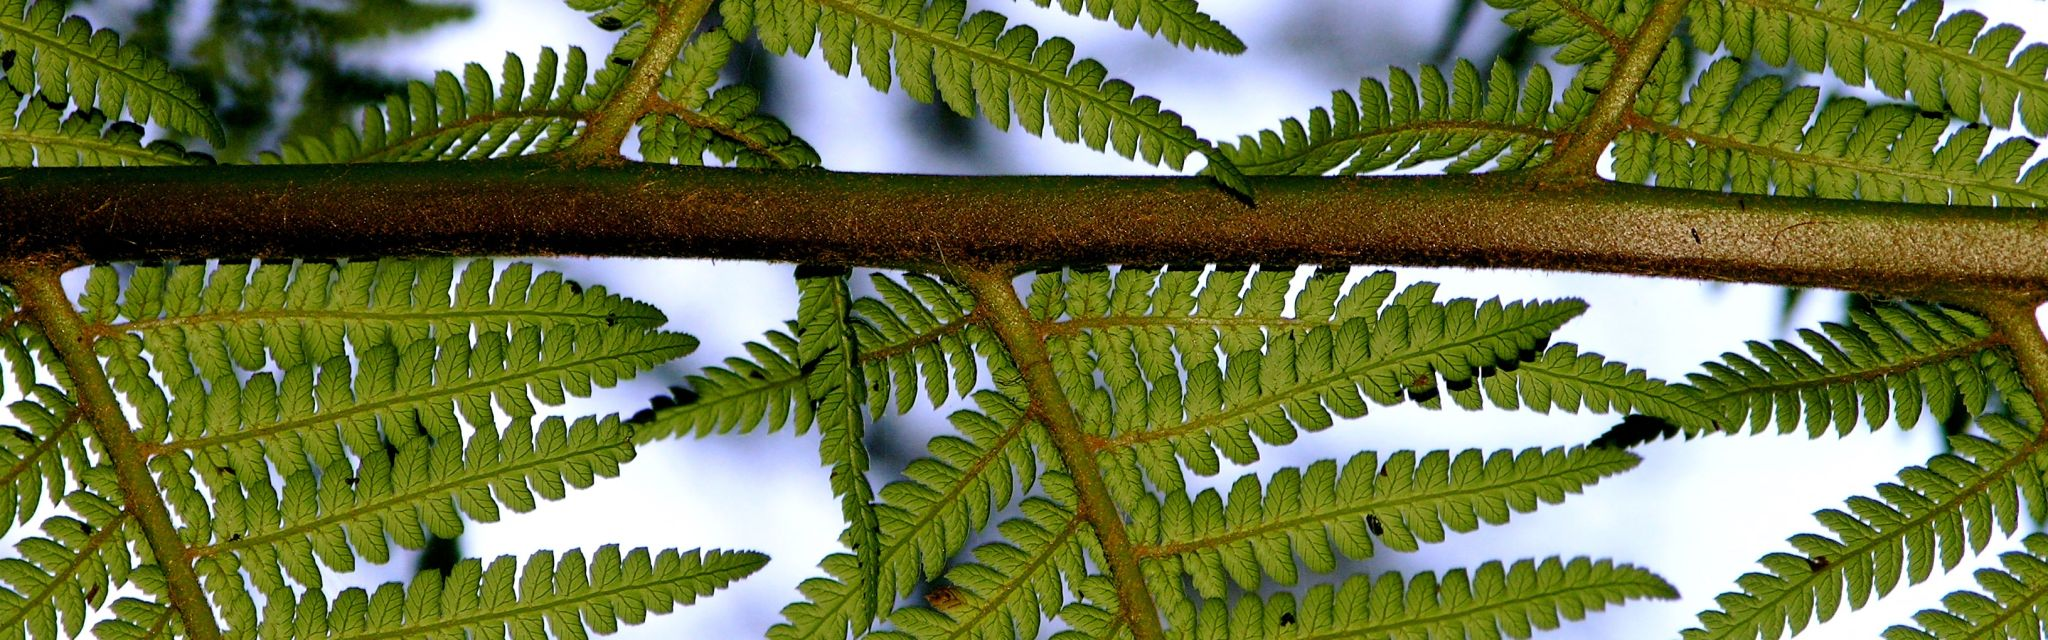 Under-side detail of a Tree Fern, image from a Nature Bound Australia tour